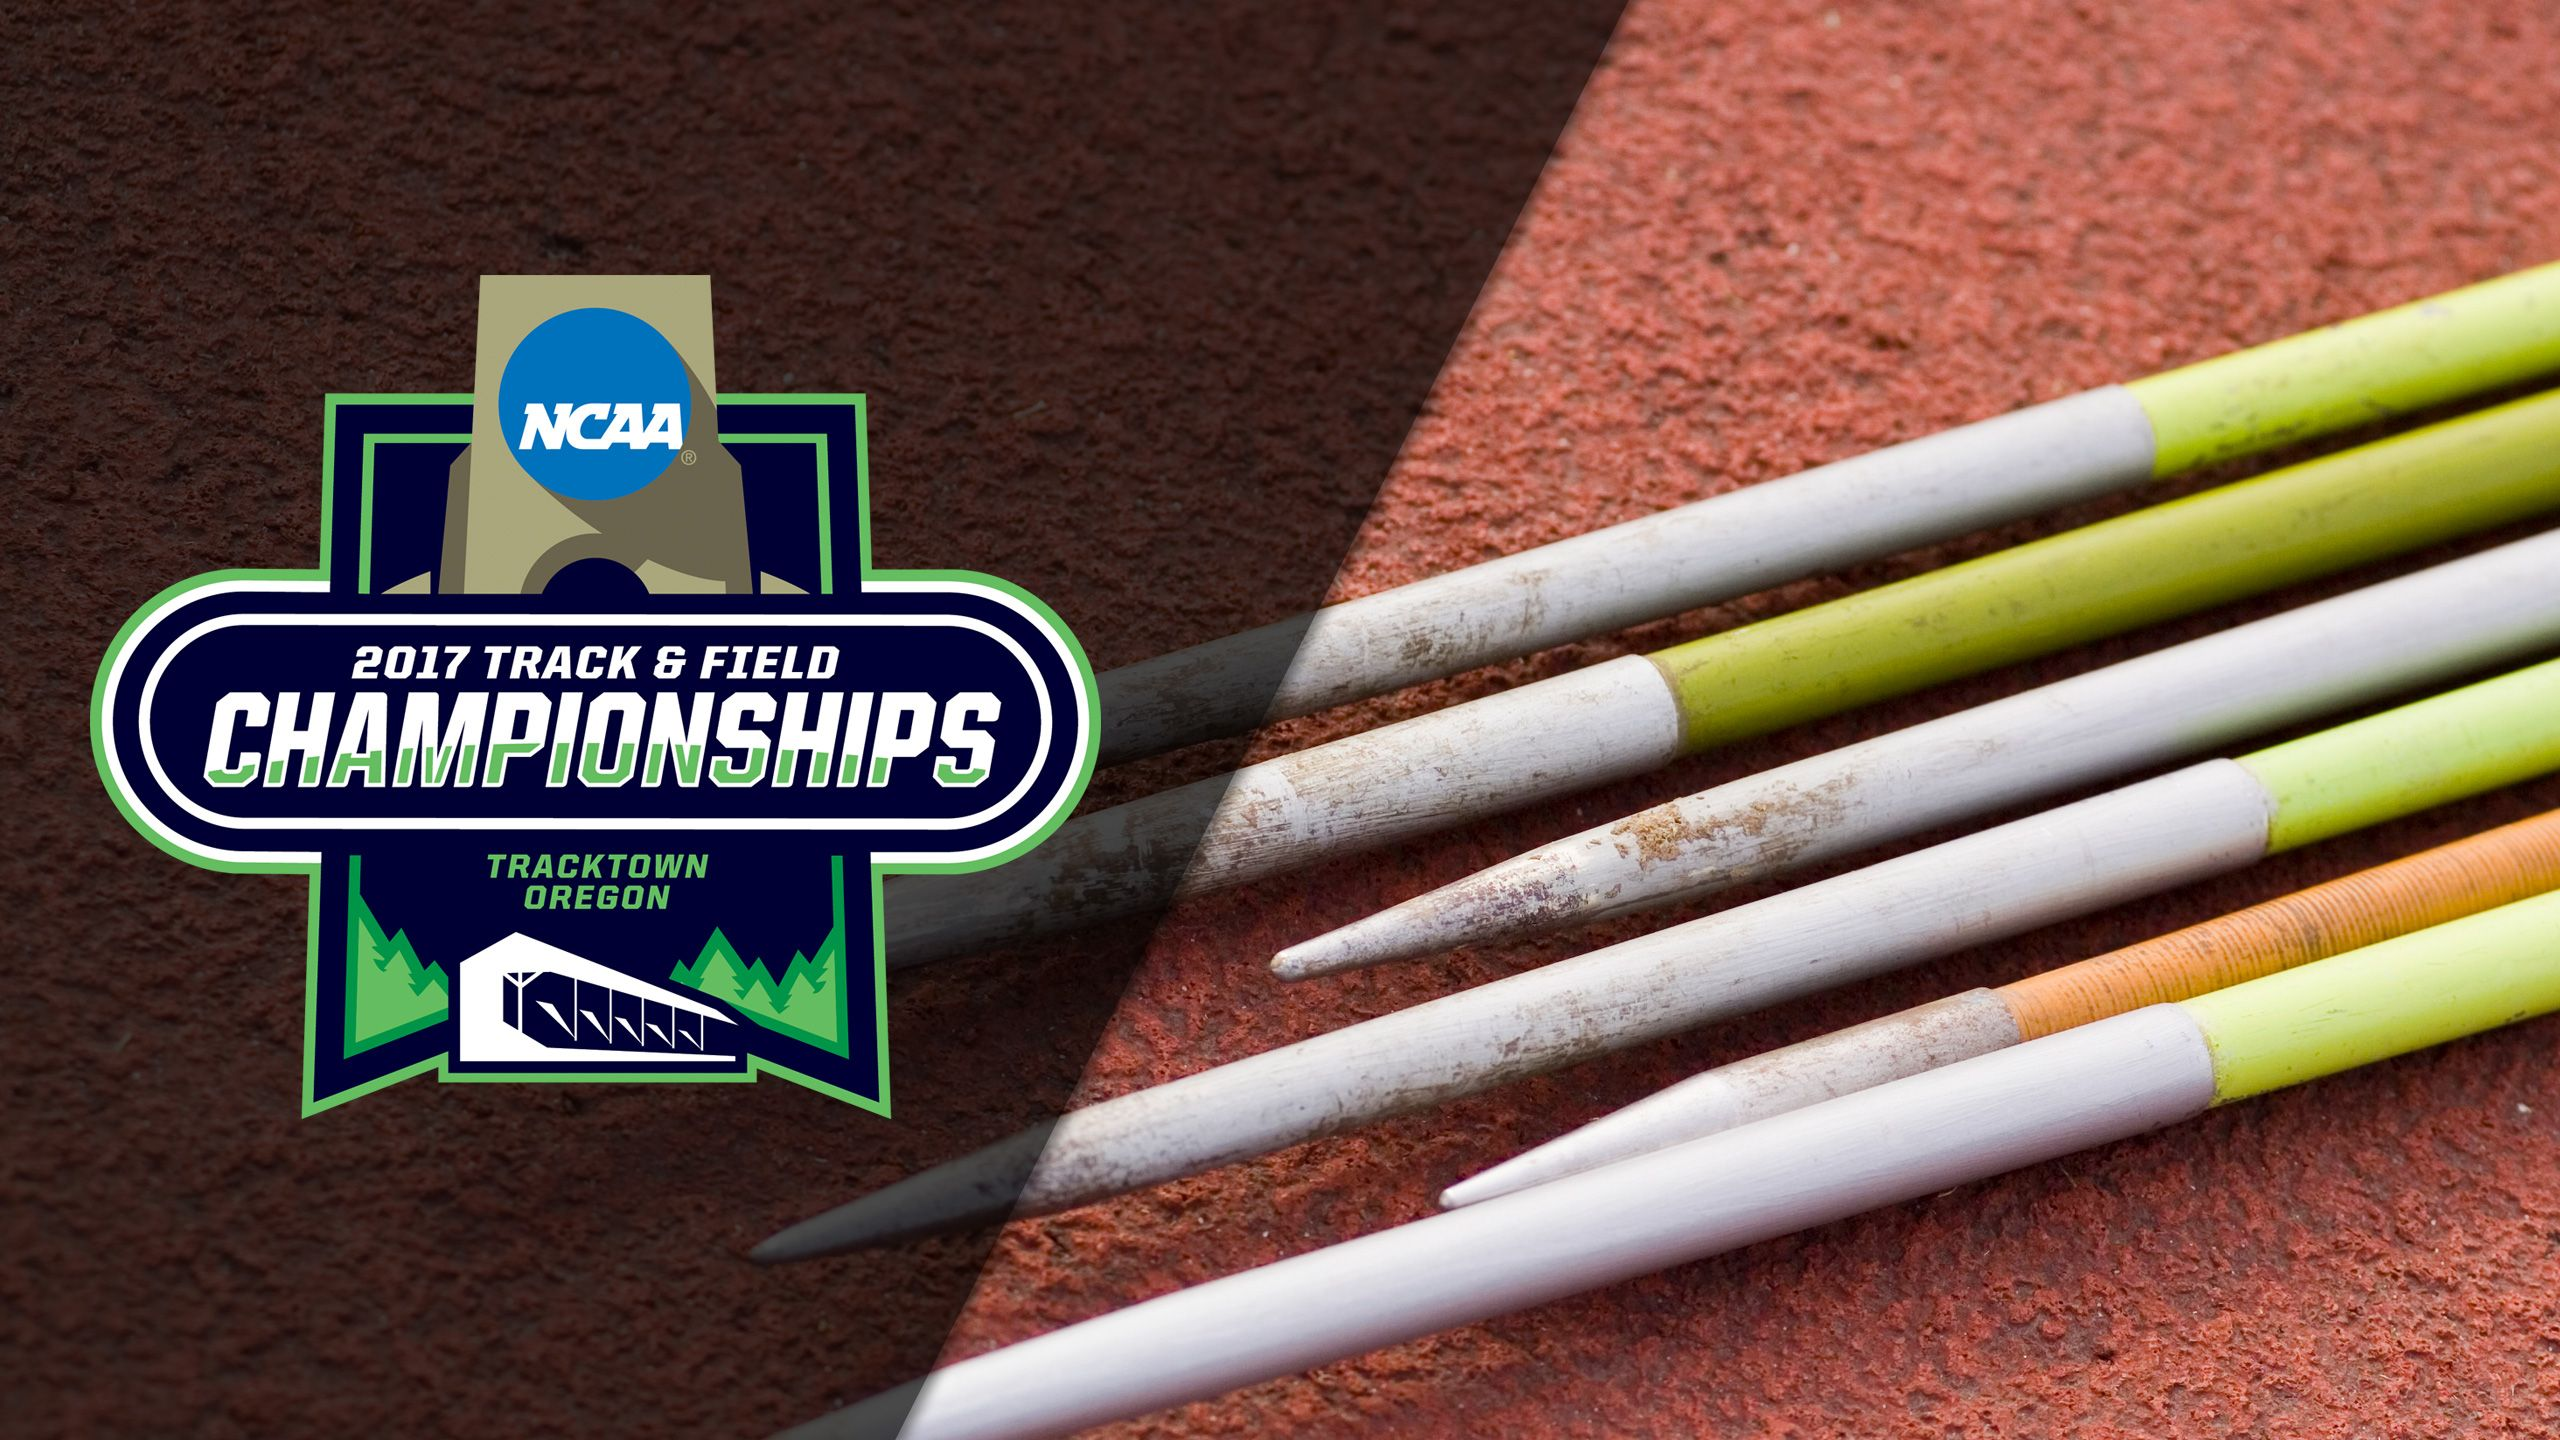 NCAA Track & Field Outdoor Championships - Women's Javelin Throw Final